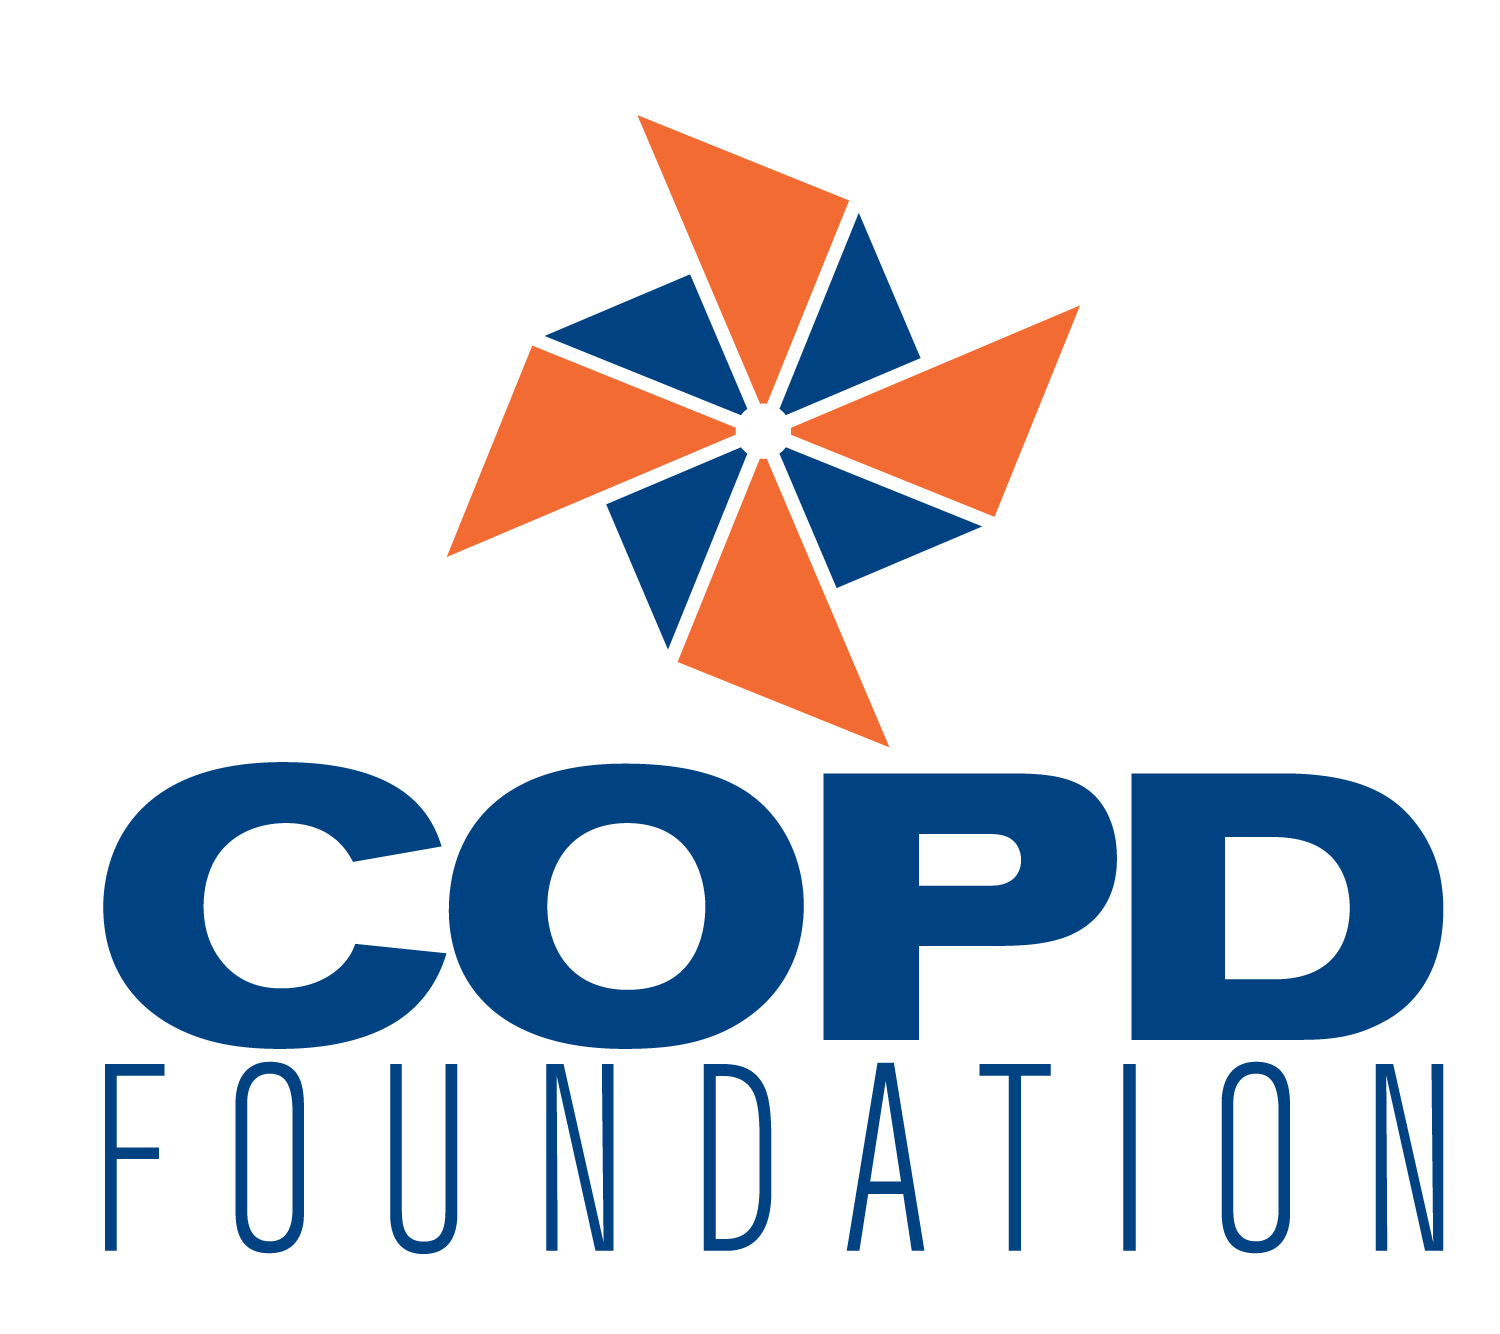 2017 copd educator course aarc online learning by aarc user reviews for copd educator course xflitez Image collections